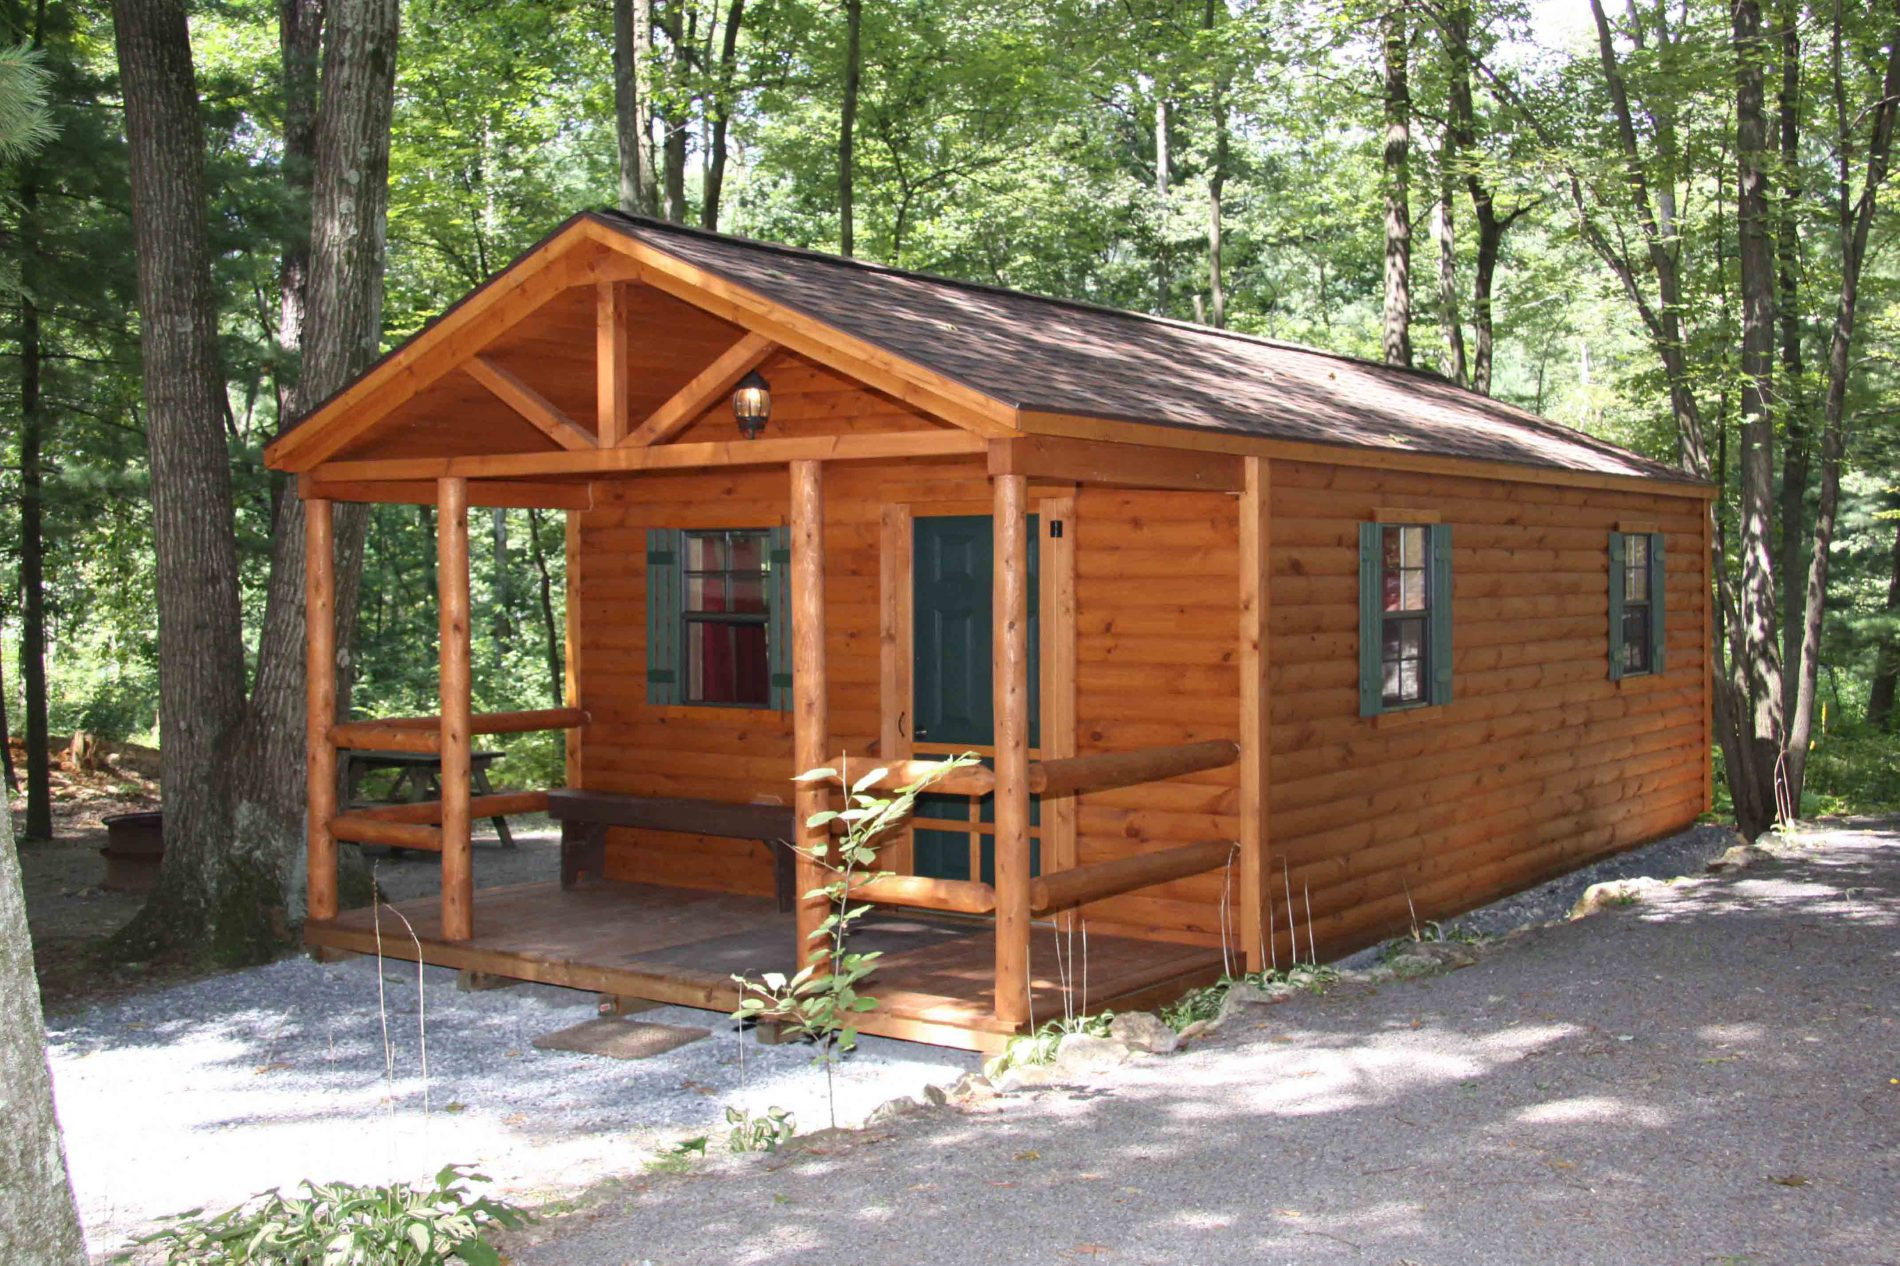 Settler cabin hunting lodge plans small cabin plans for How to build a small cabin with a loft